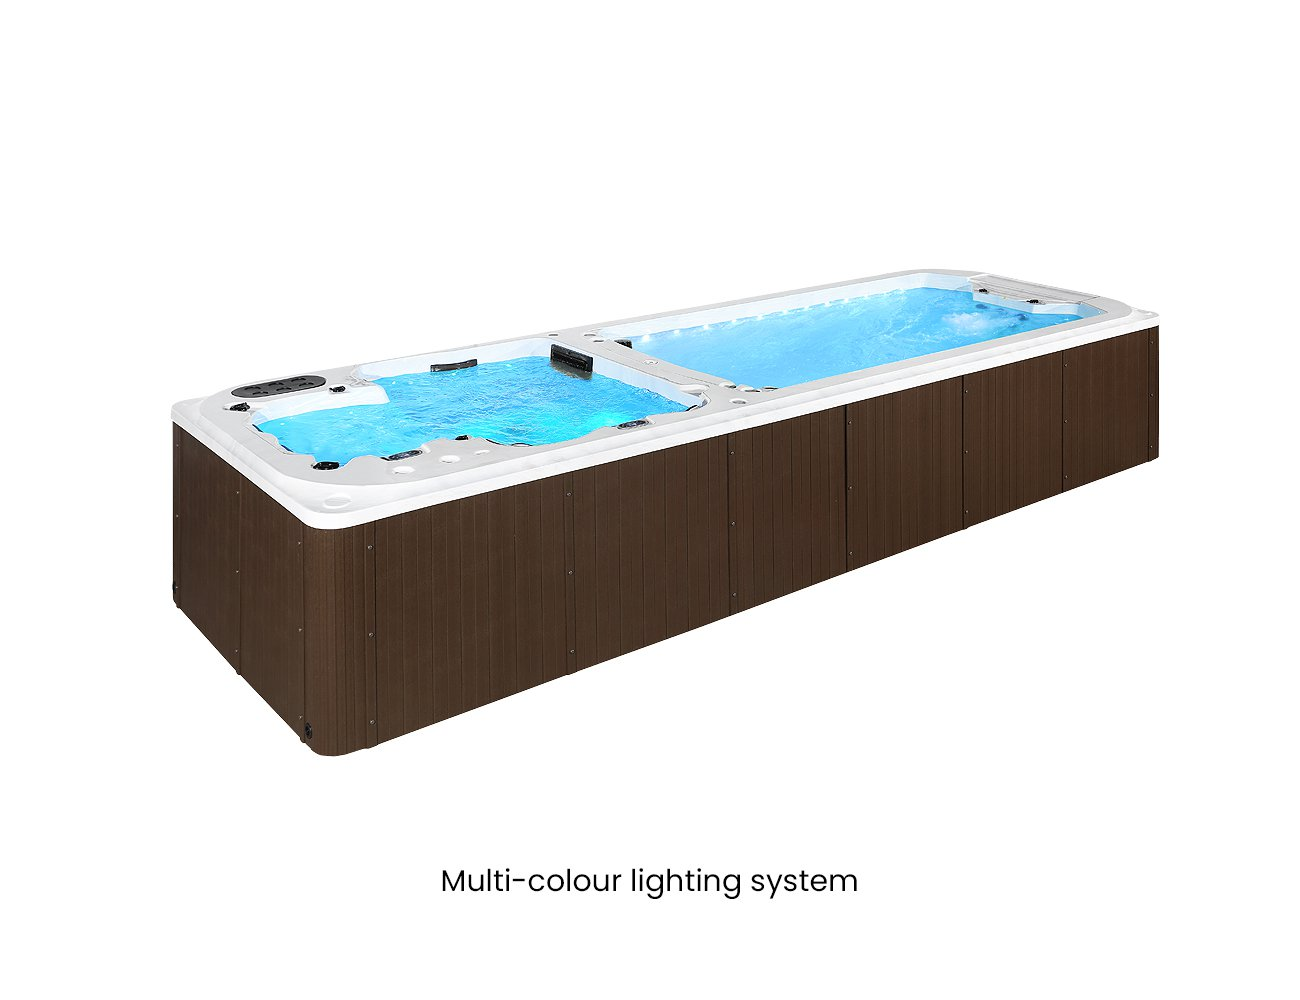 Tekapo 6.8m Dual Zone Swim Spa